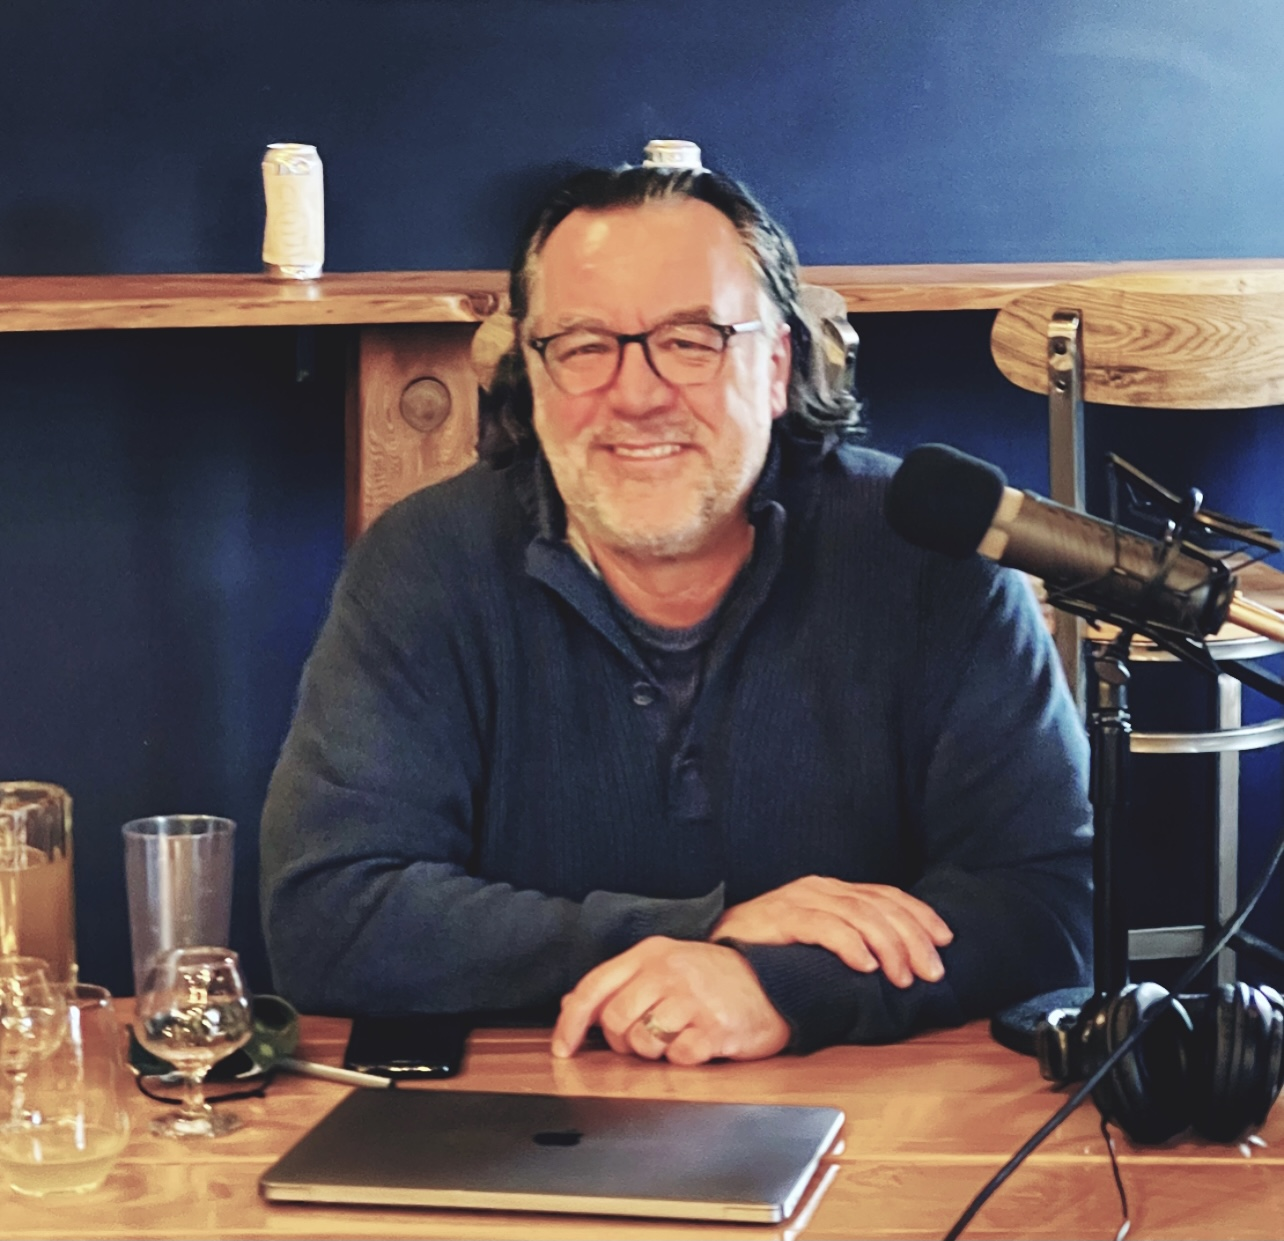 Andre Meunier March 2020 to March 2021 A Pandemic Year Review in Portland, Oregon Craft Beer – Craft Beer Podcast Episode 129 by Steven Shomler FINAL